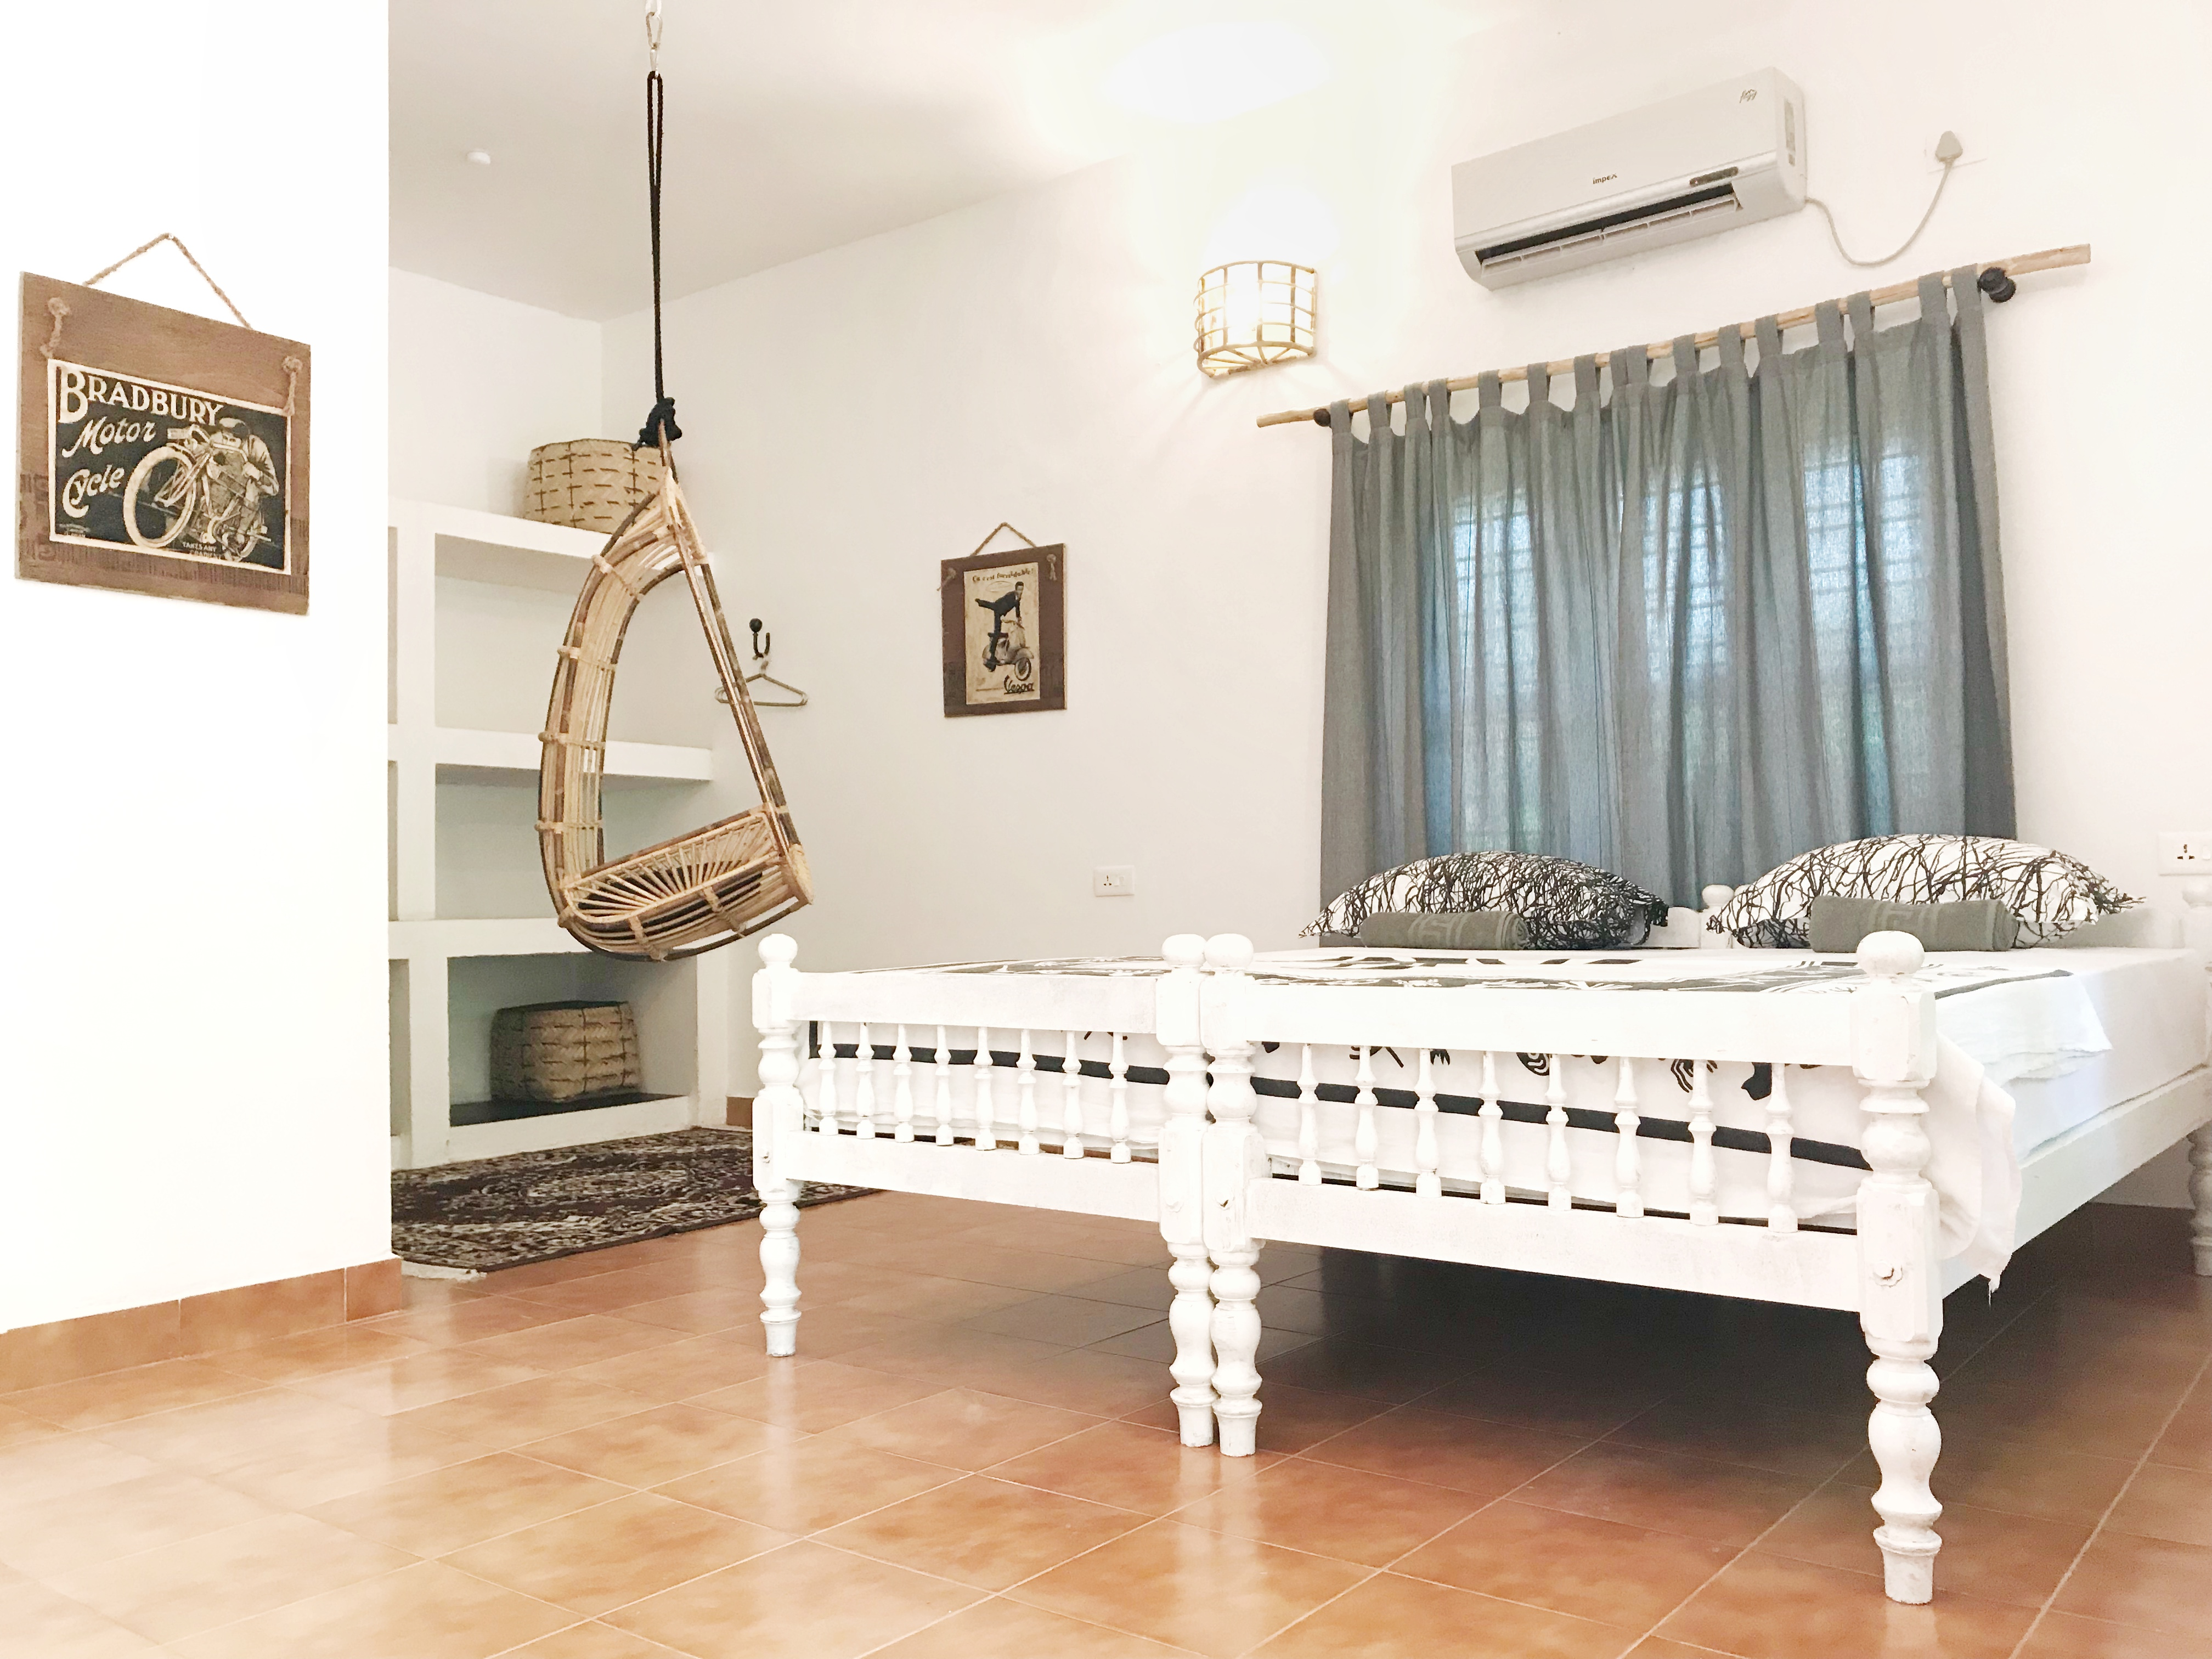 9.2 Star Rating Boutique Hotel and Restaurant (Running by Foreigners) in Kerela